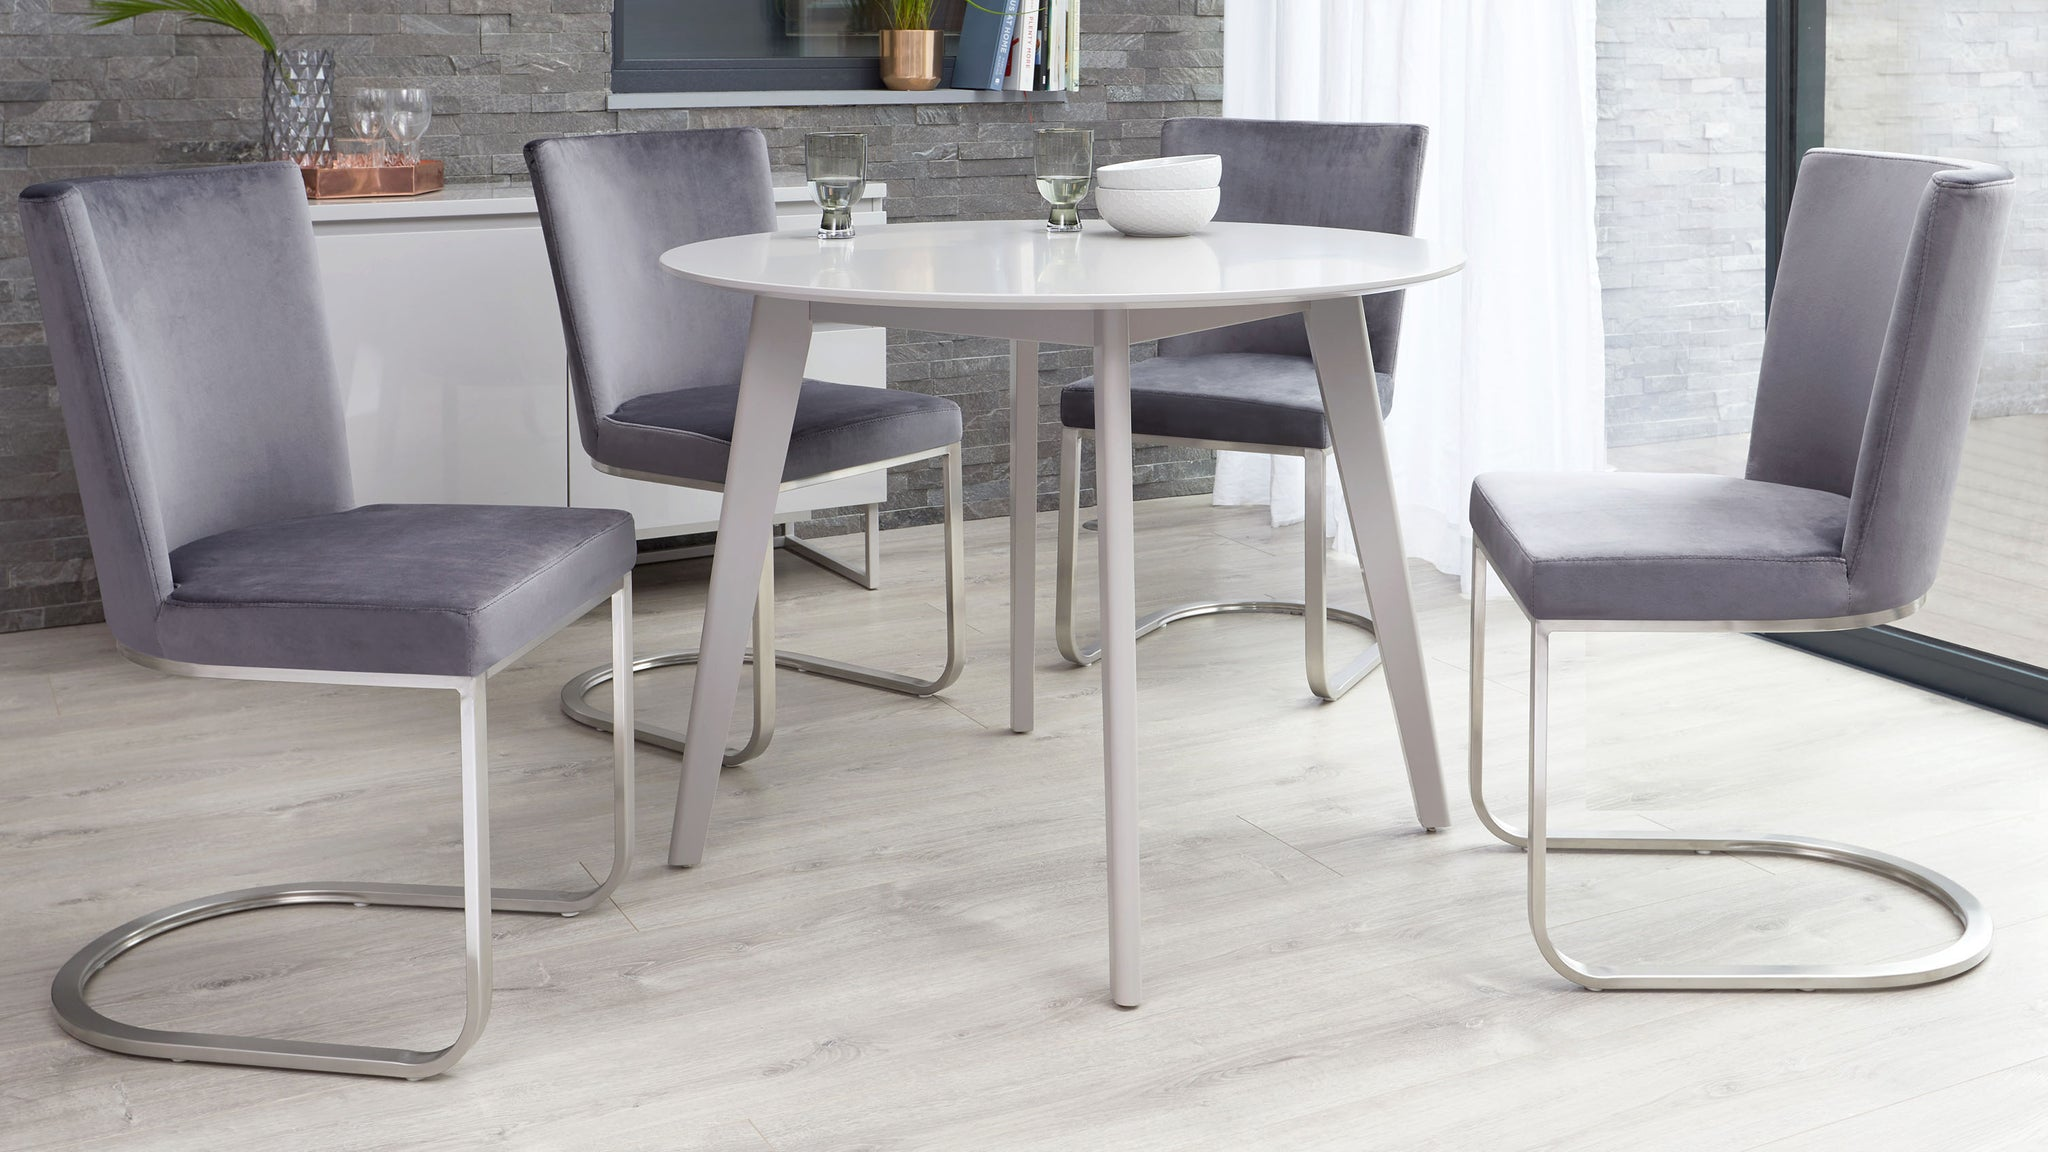 Terni Matt Grey And Form Velvet With Steel 4 Seater Dining Set